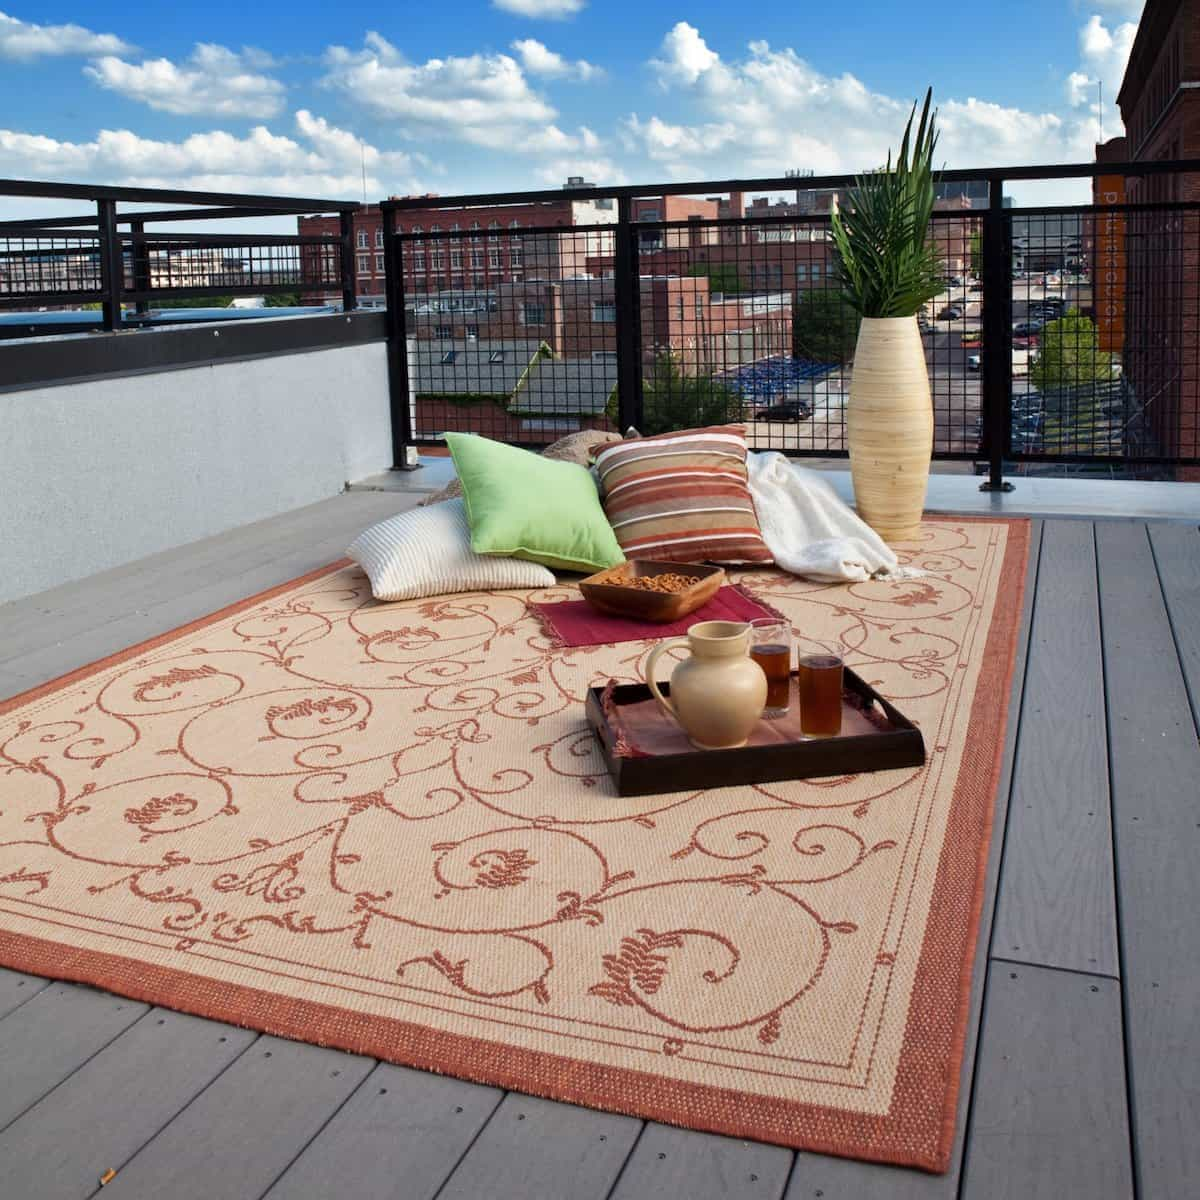 Orian Rugs Outdoor Area Rug Collection For Outdoor Ambiance (Image 13 of 15)